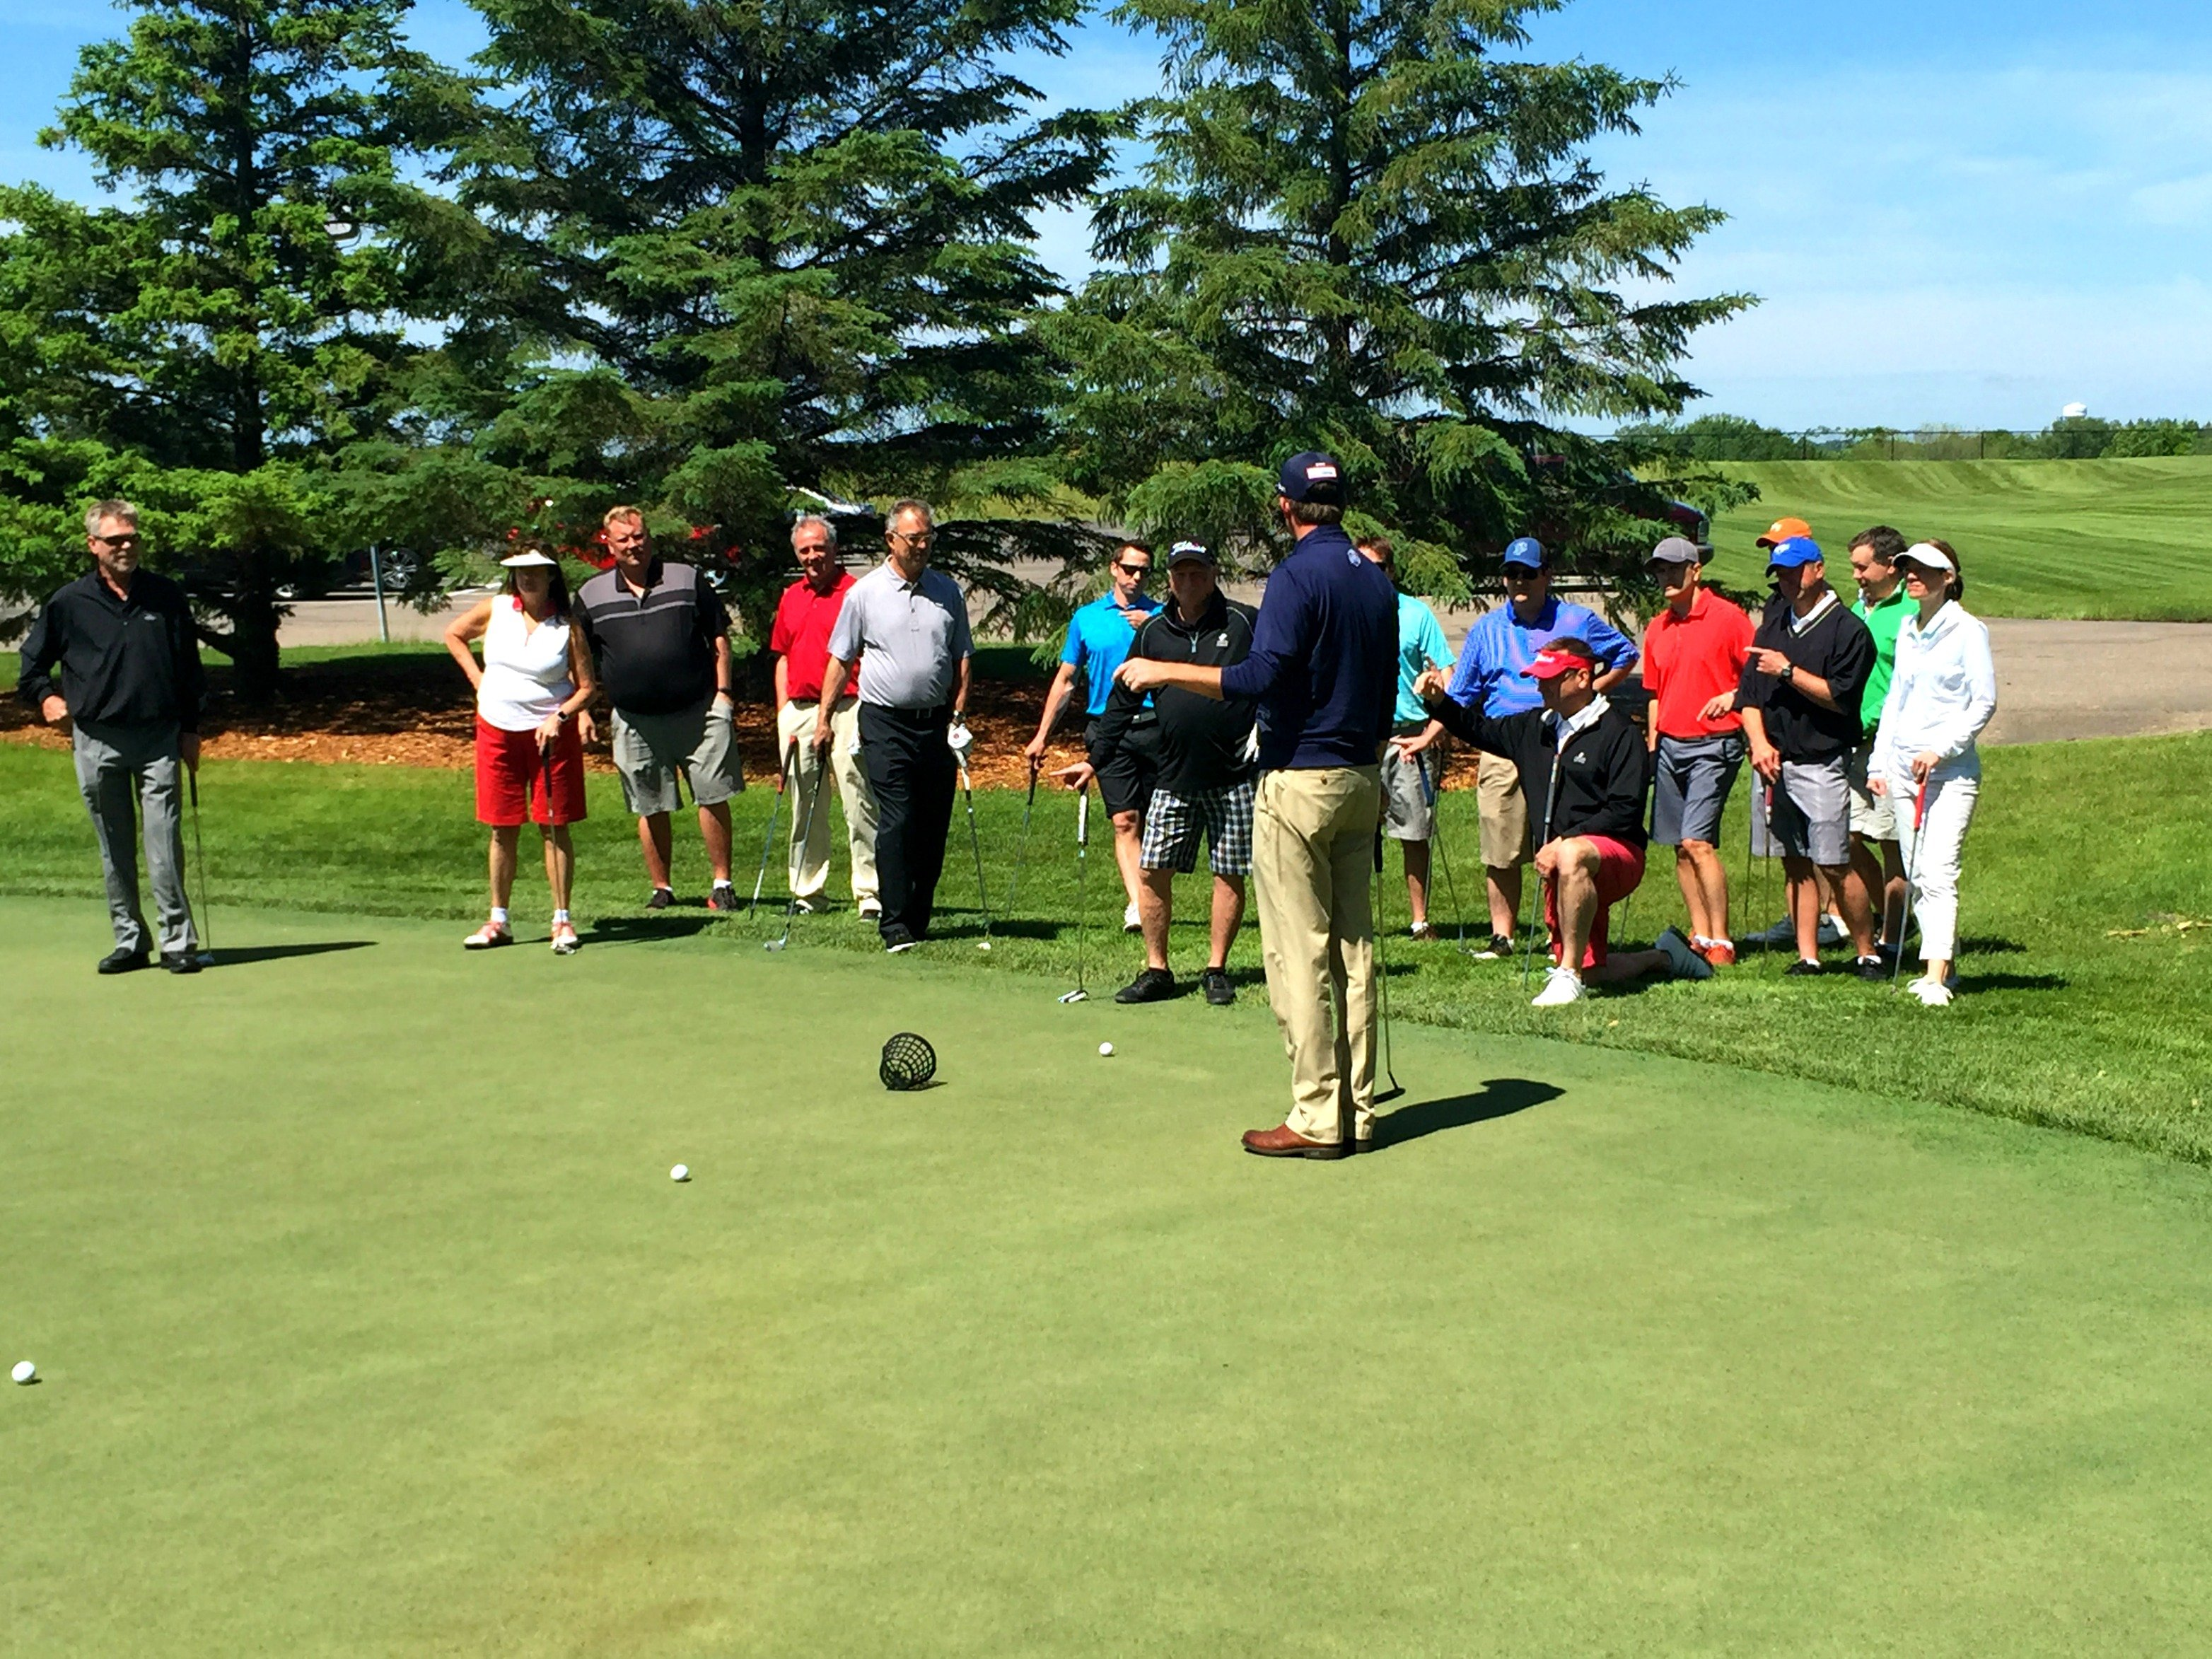 Business golfers at a golf clinic and social event at Hazeltine National Golf Club